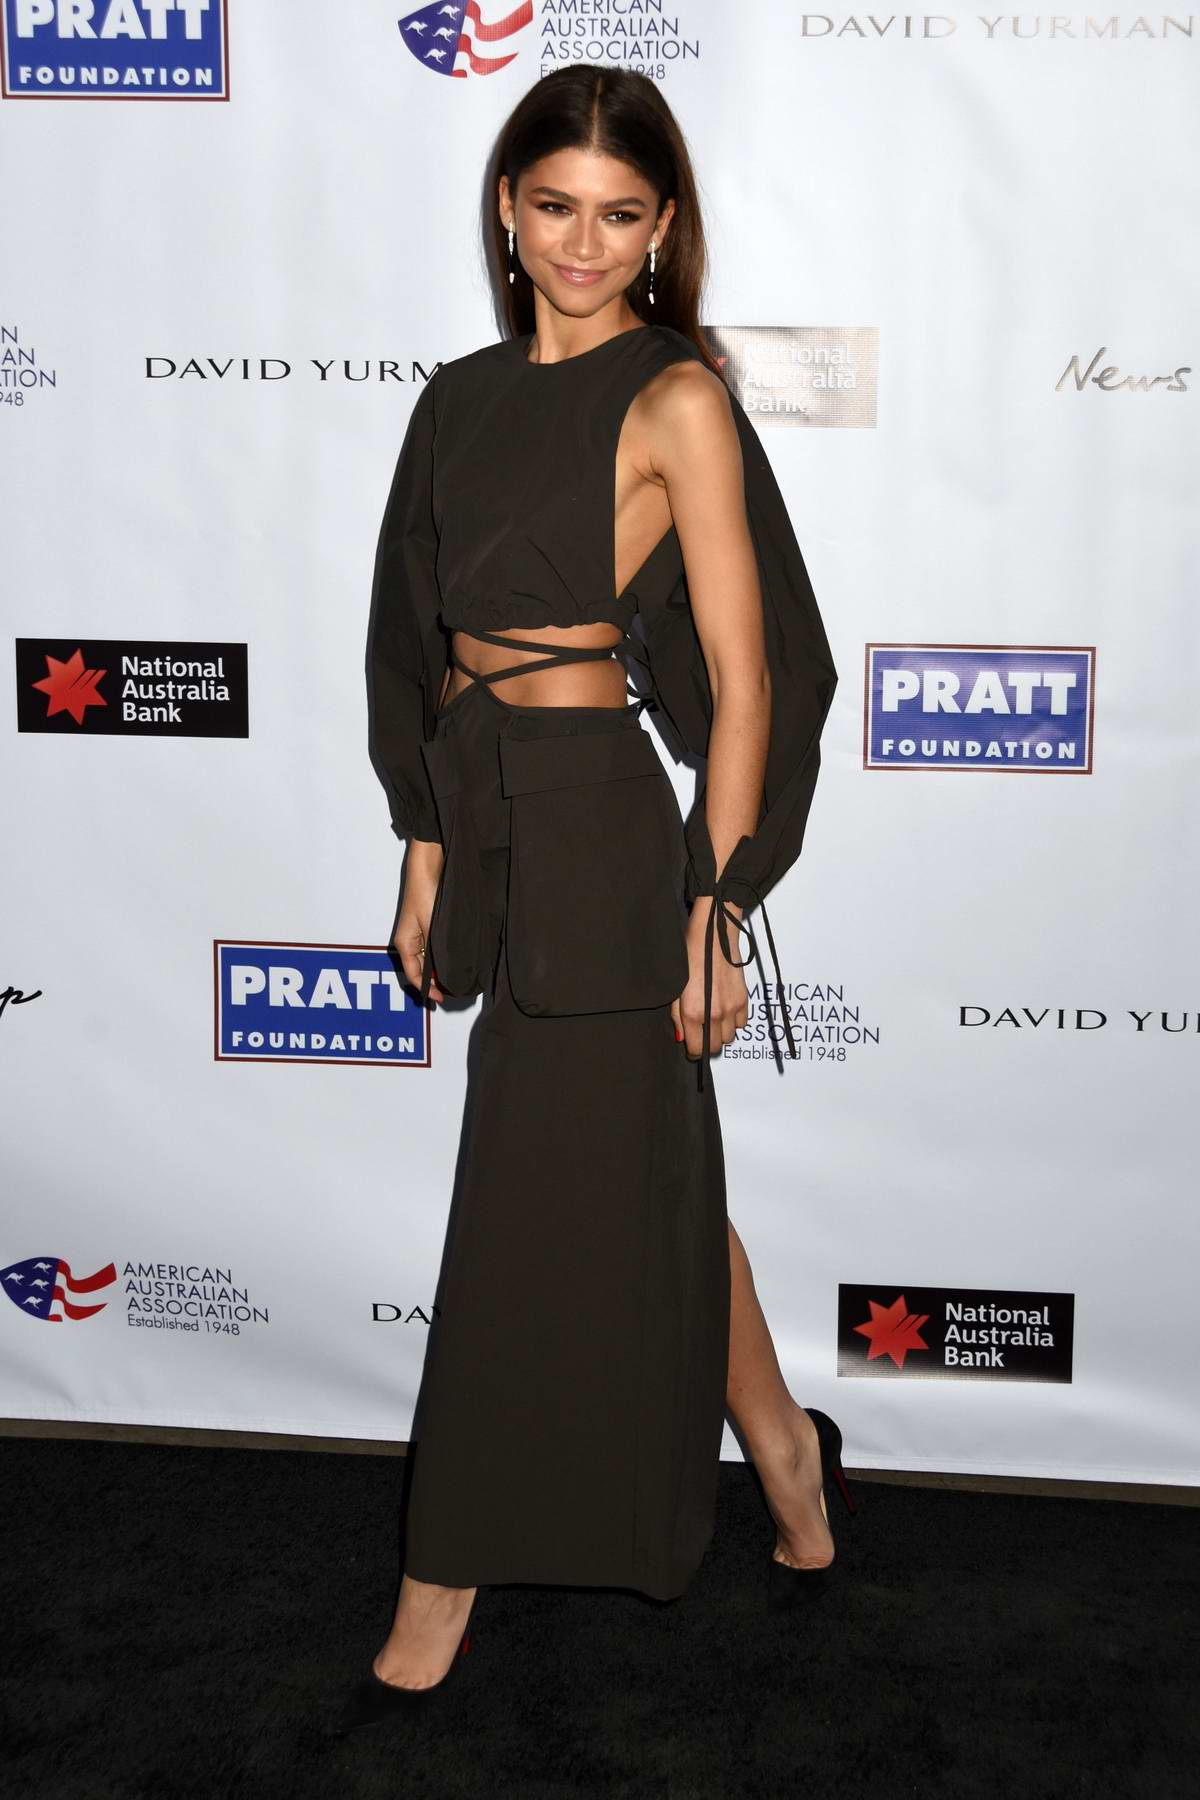 Zendaya Coleman attends the AAA Arts Awards Gala to support Australian Bushfire Relief at Skylight Modern in New York City